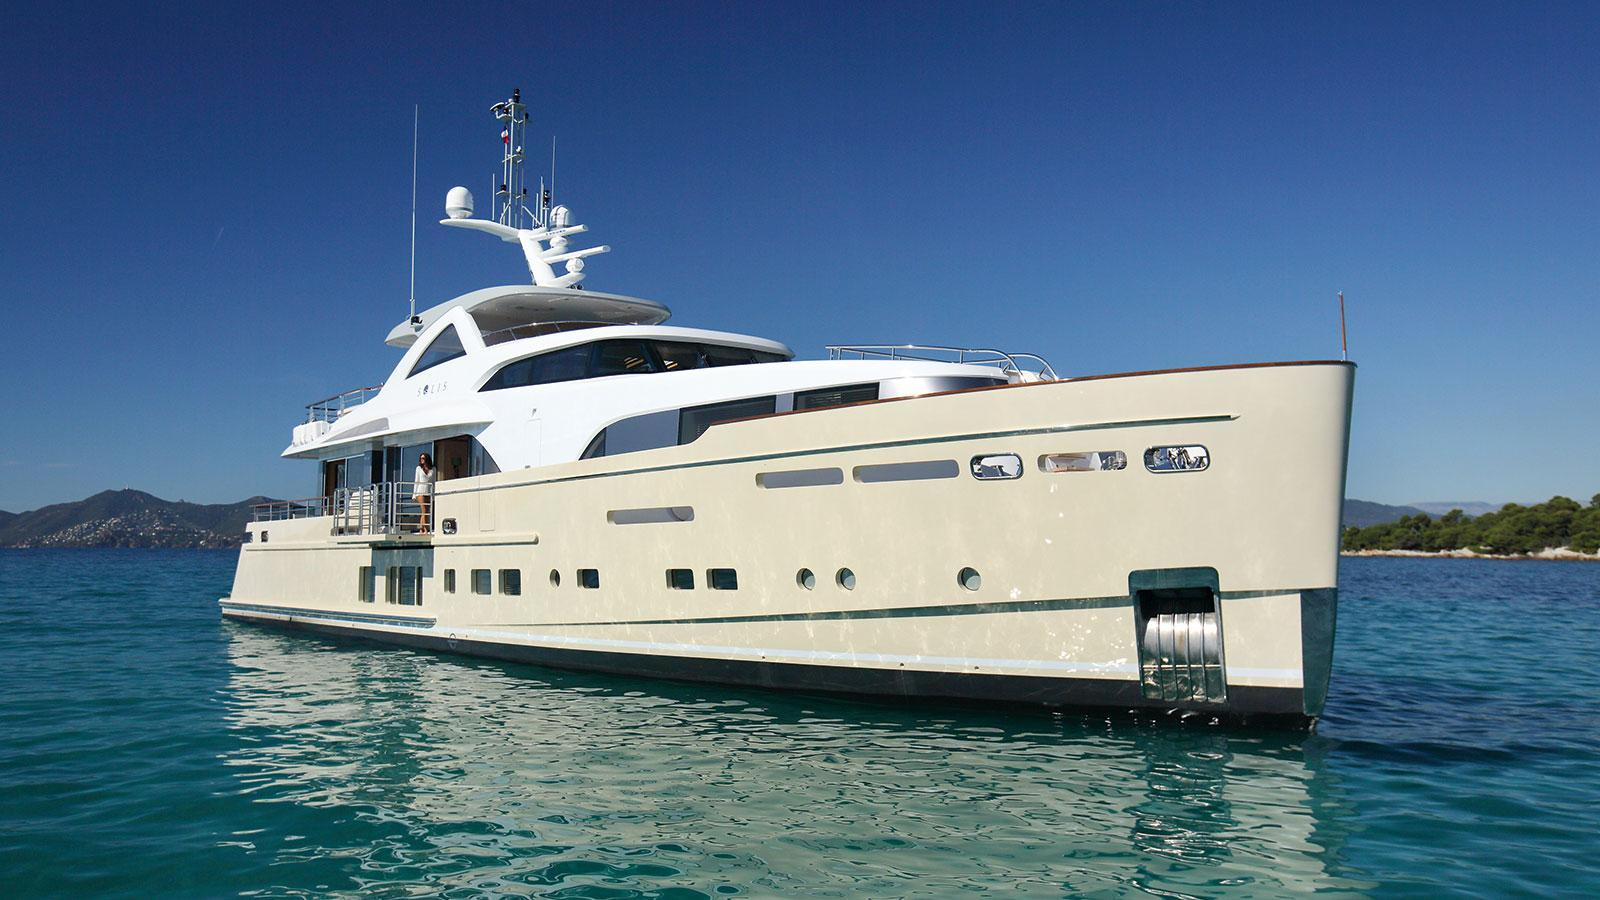 solis-motor-yacht-mulder-2015-34m-front-profile